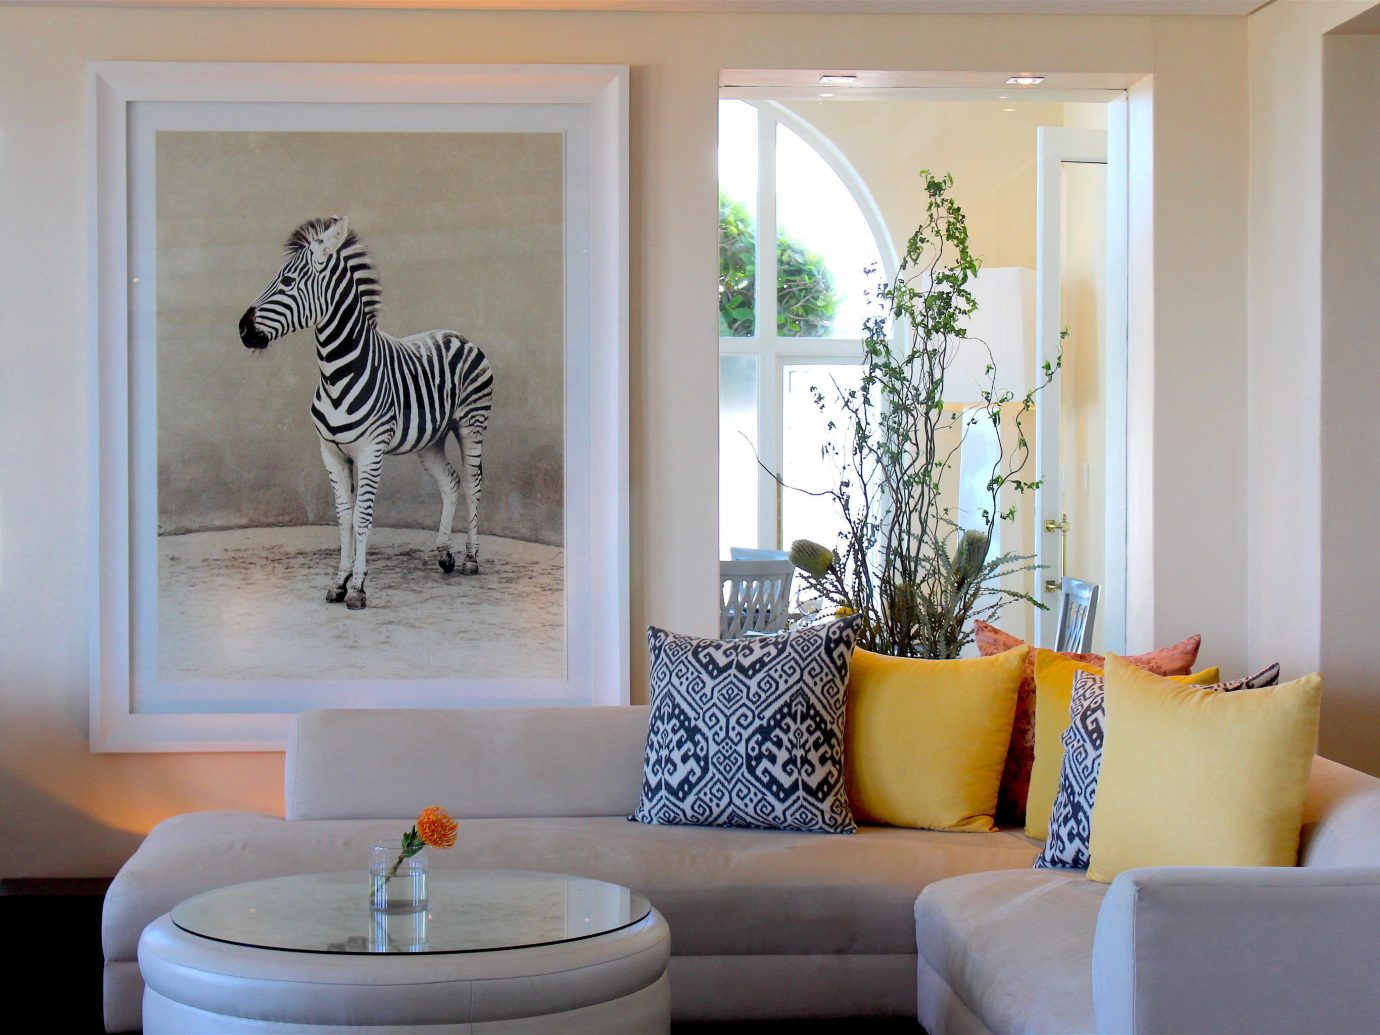 Outdoors + Adventure Safaris Trip Ideas wall indoor window room living room Living property home interior design estate window covering Design modern art dining room ceiling decorated furniture